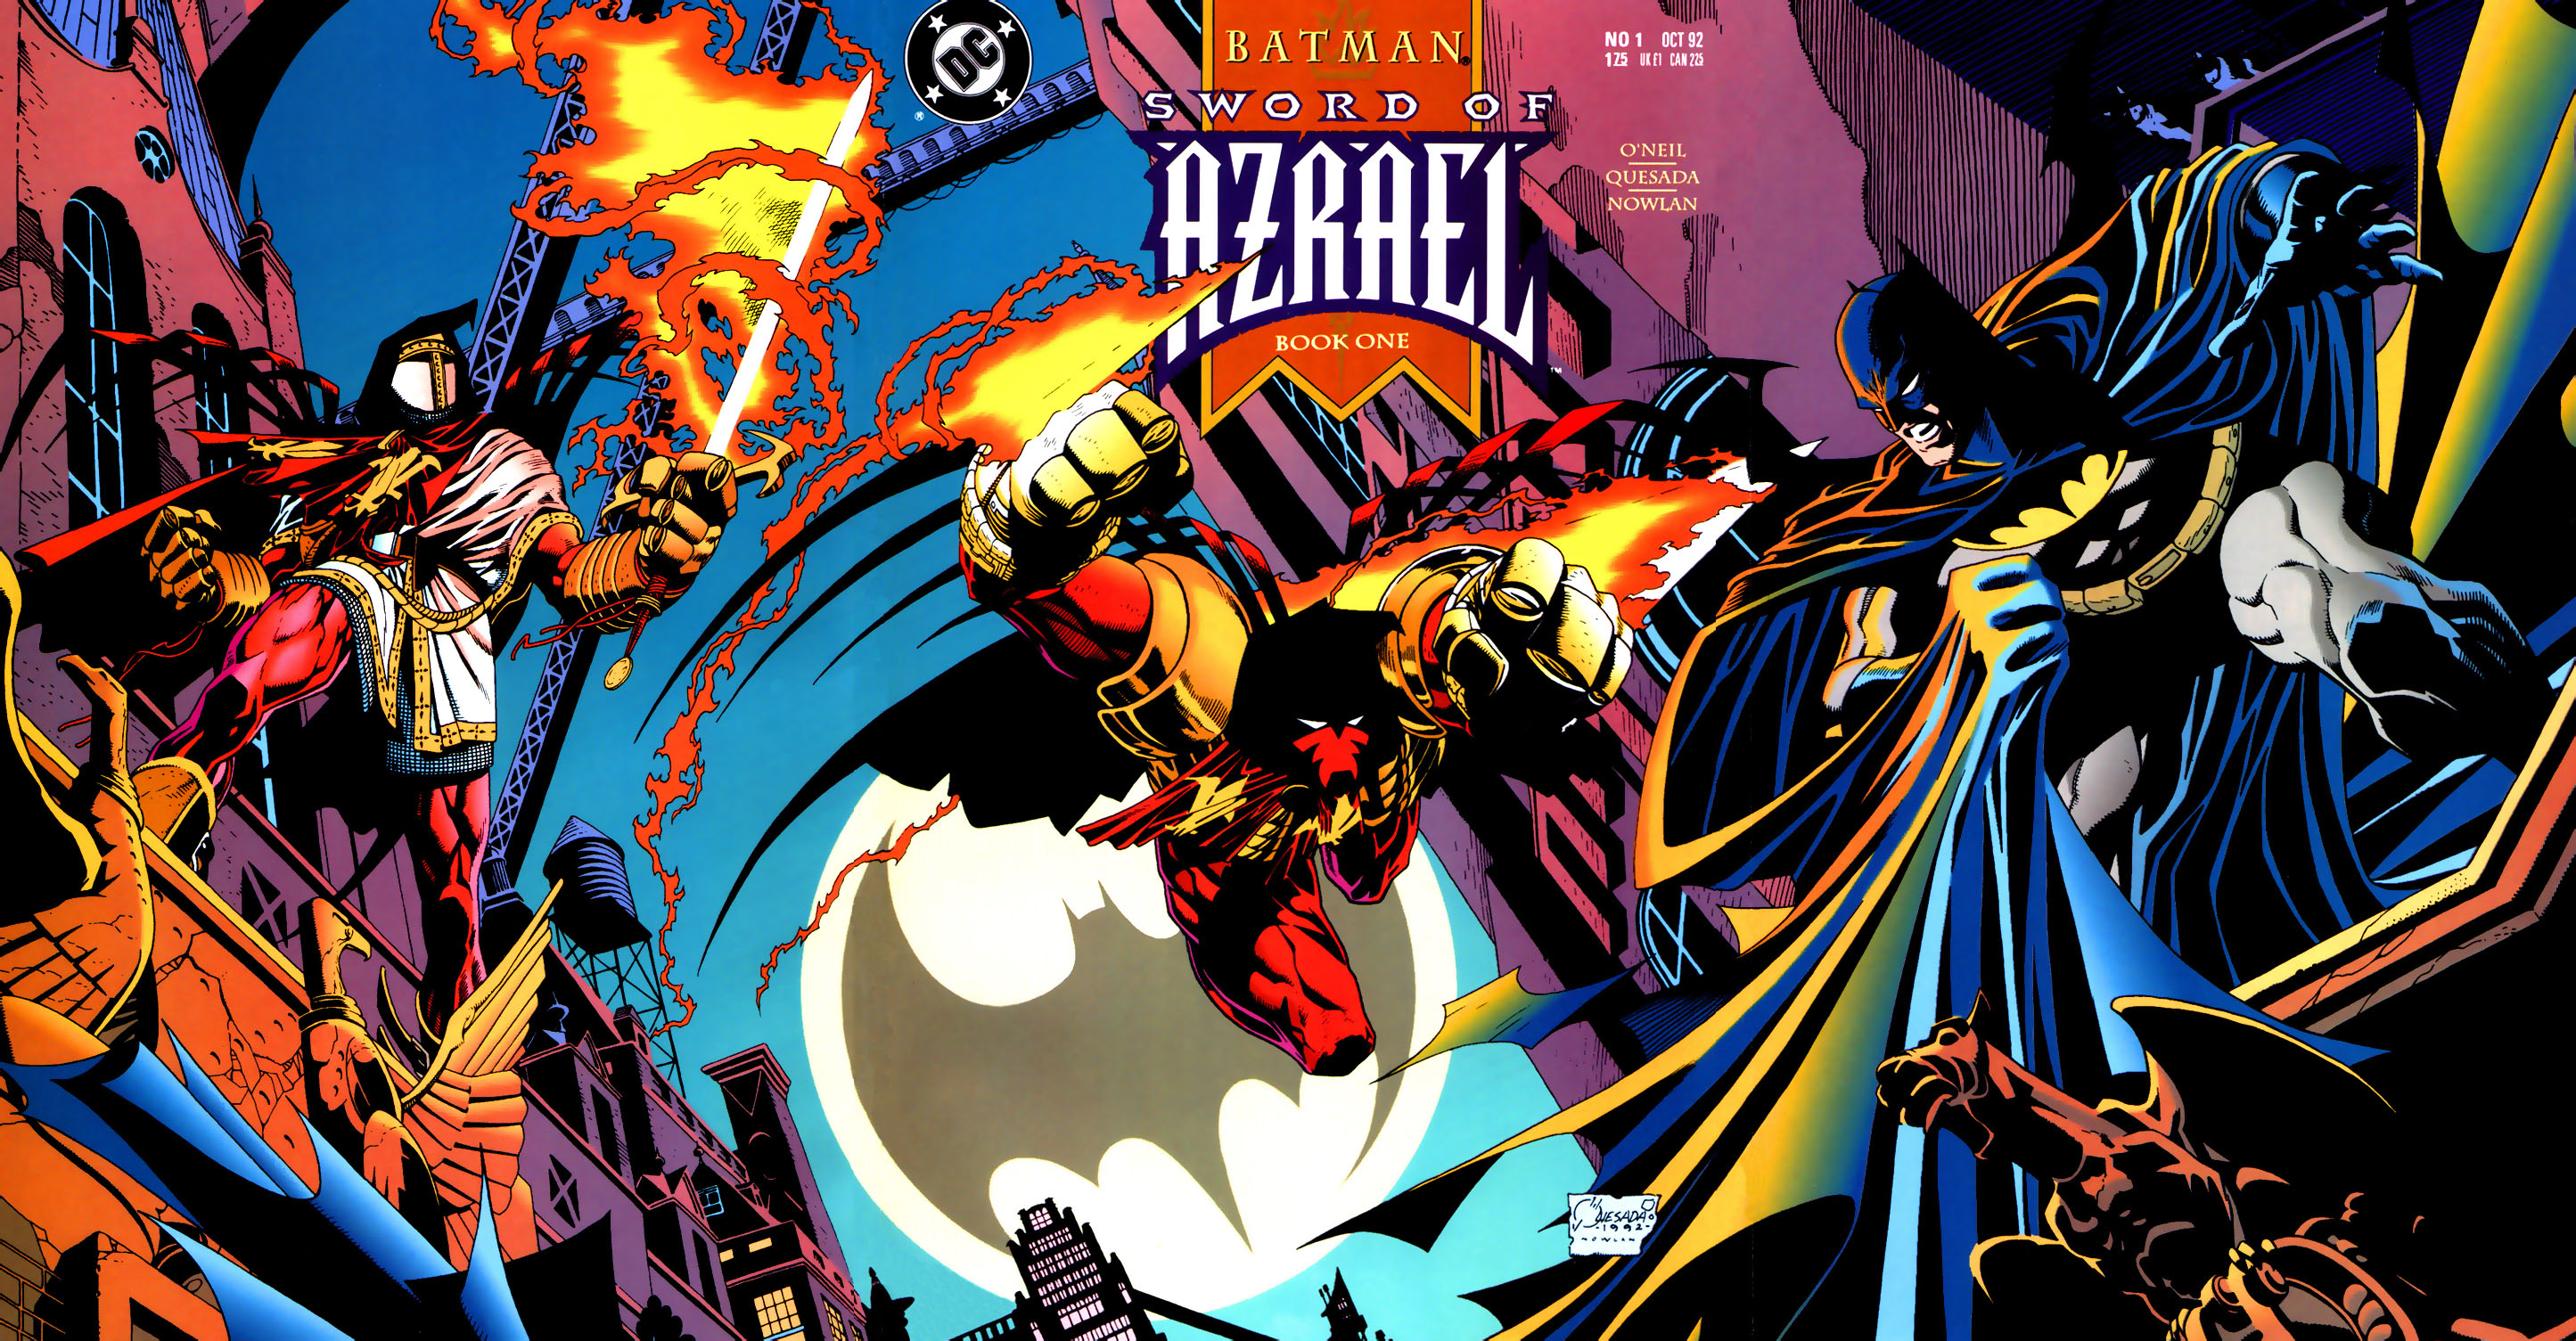 Sword of Azrael 1 Gatefold Cover